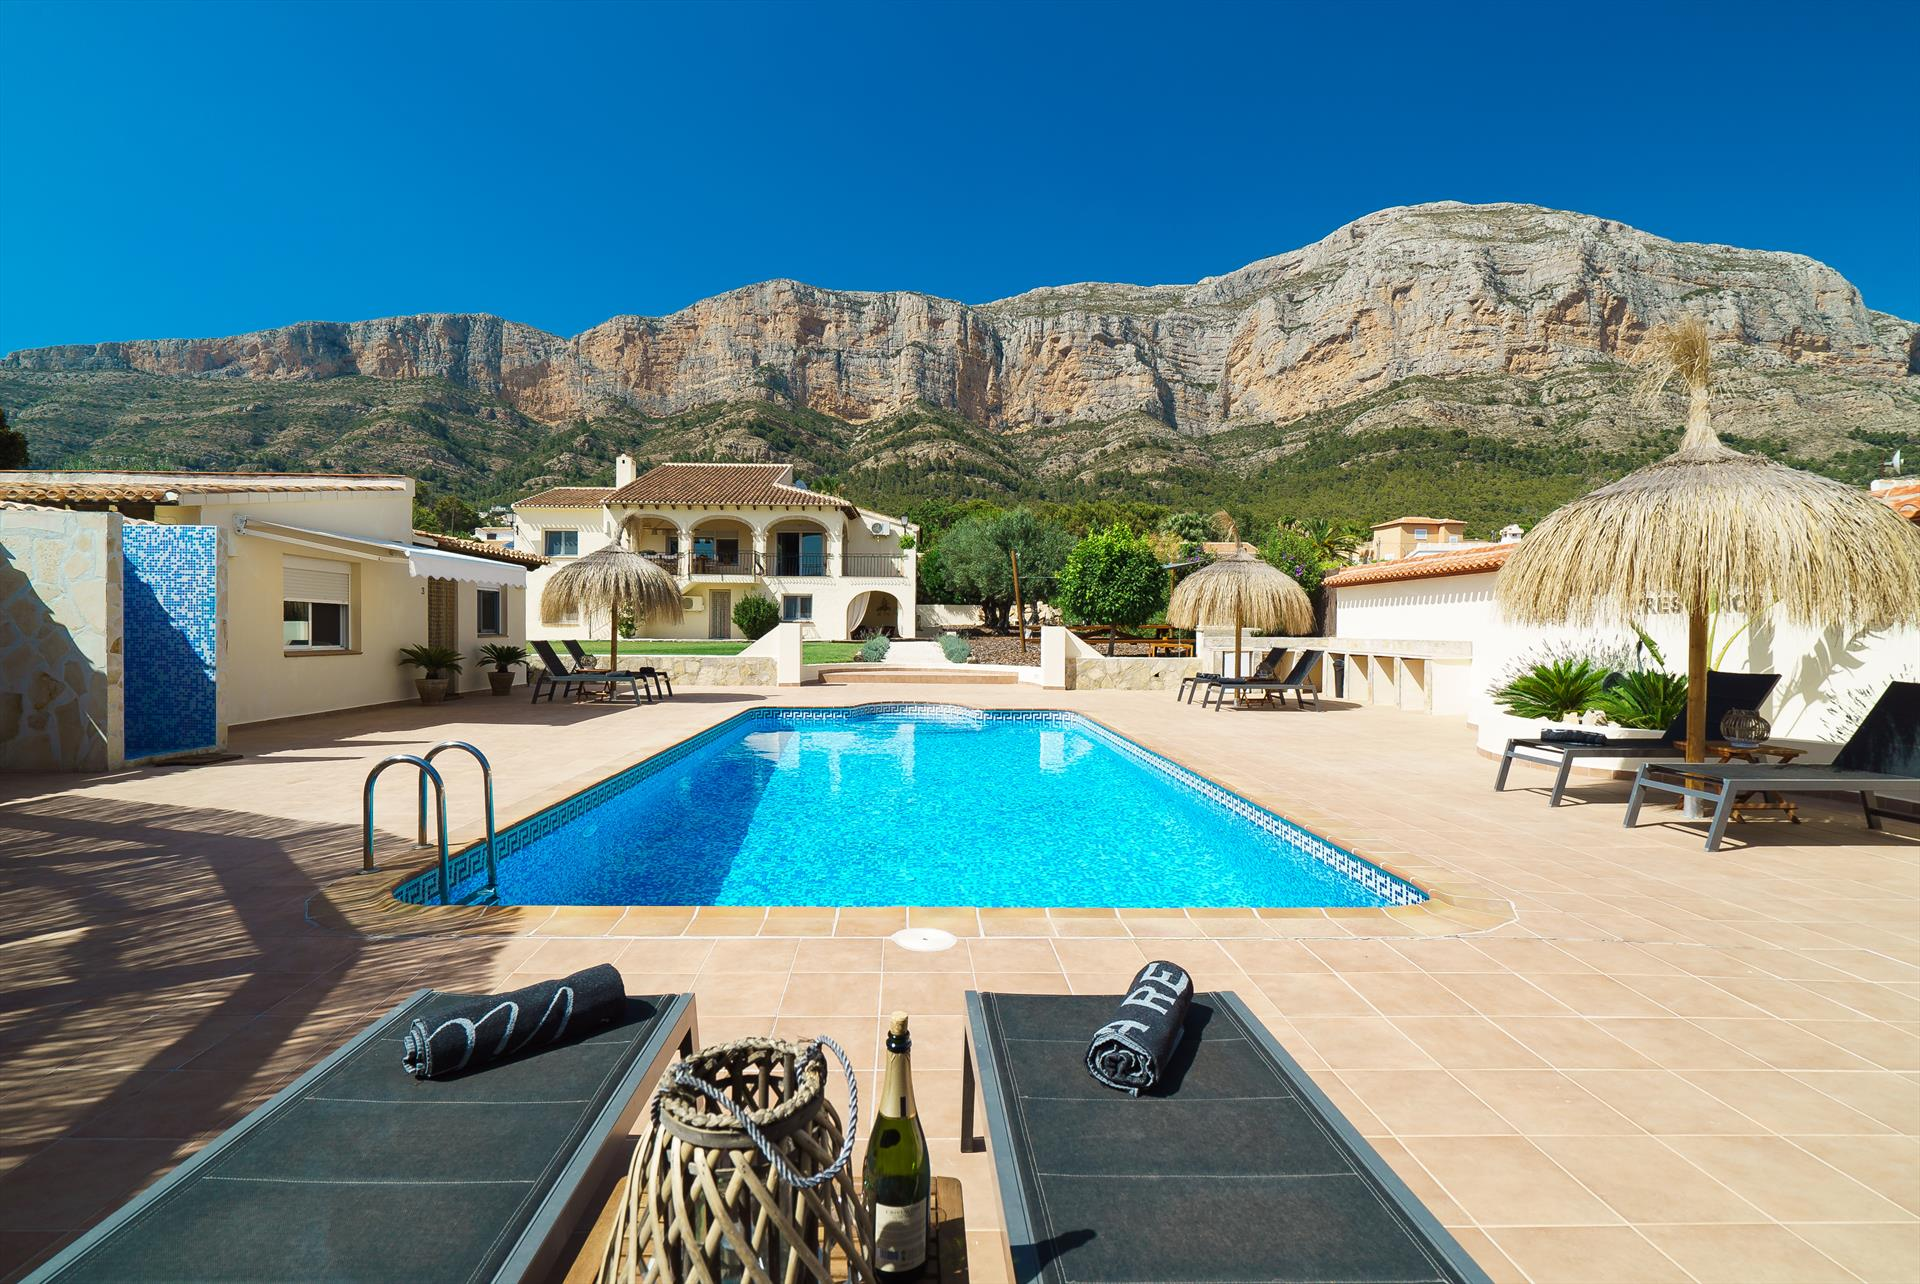 Luxury Holiday Villa With Pool 6 Luxury Holiday Homes With Private Pool In Denia And Surroundings